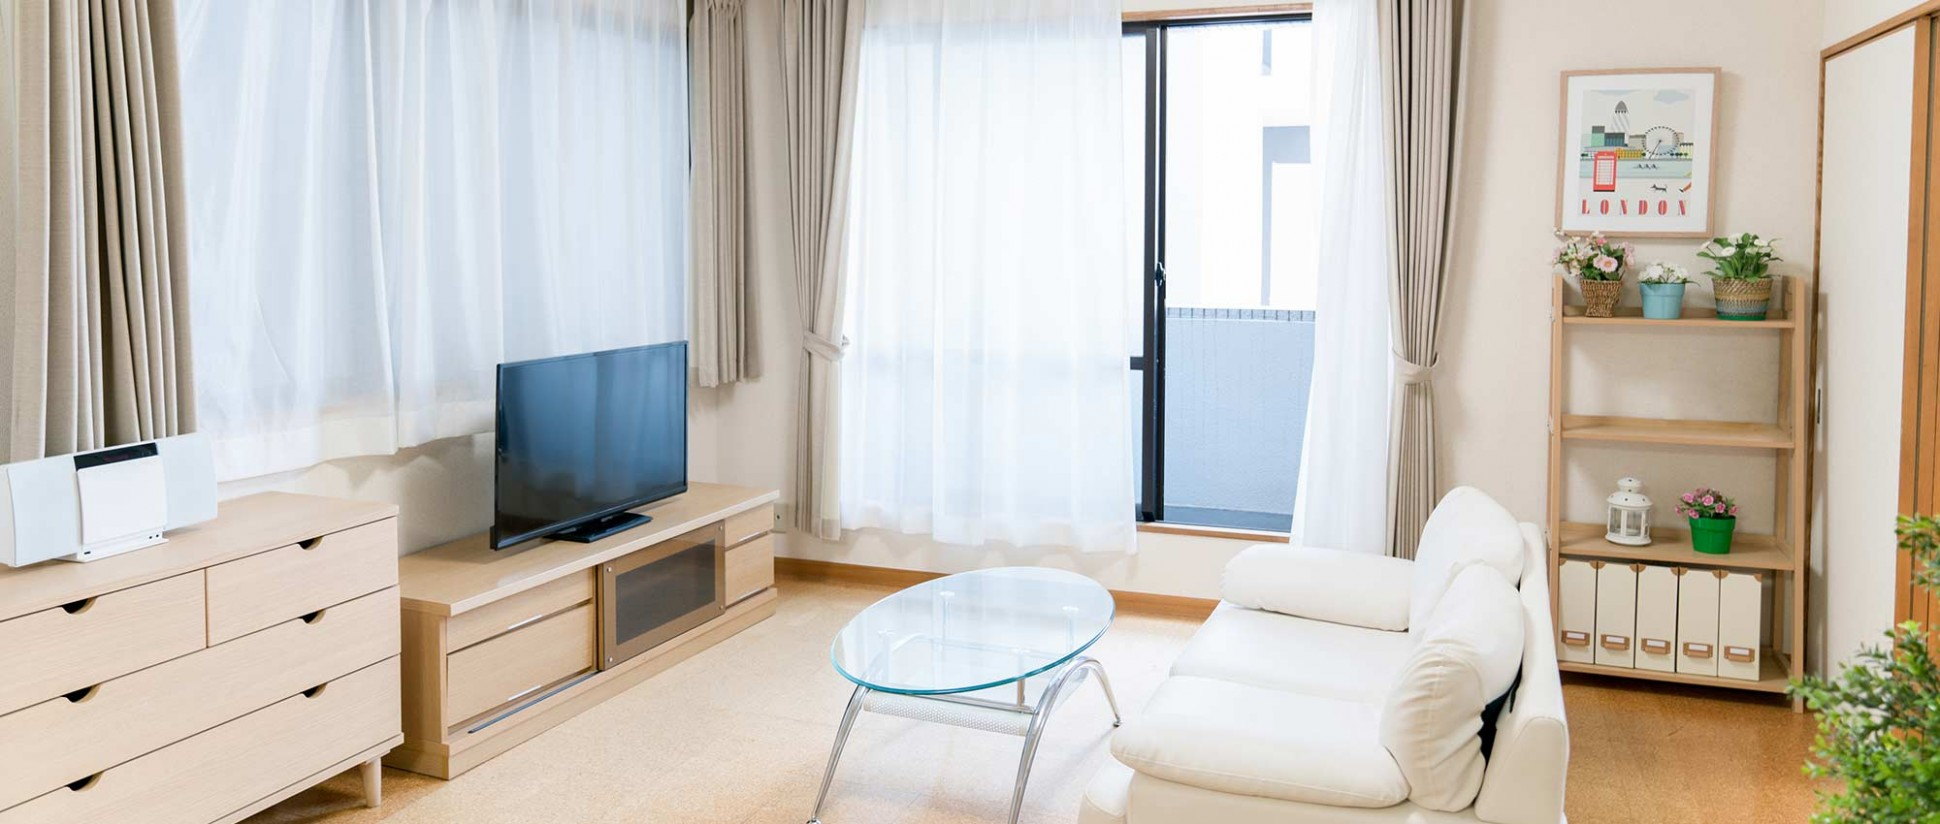 12 Ways to Make the Most of a Small Japanese Apartment - Apts